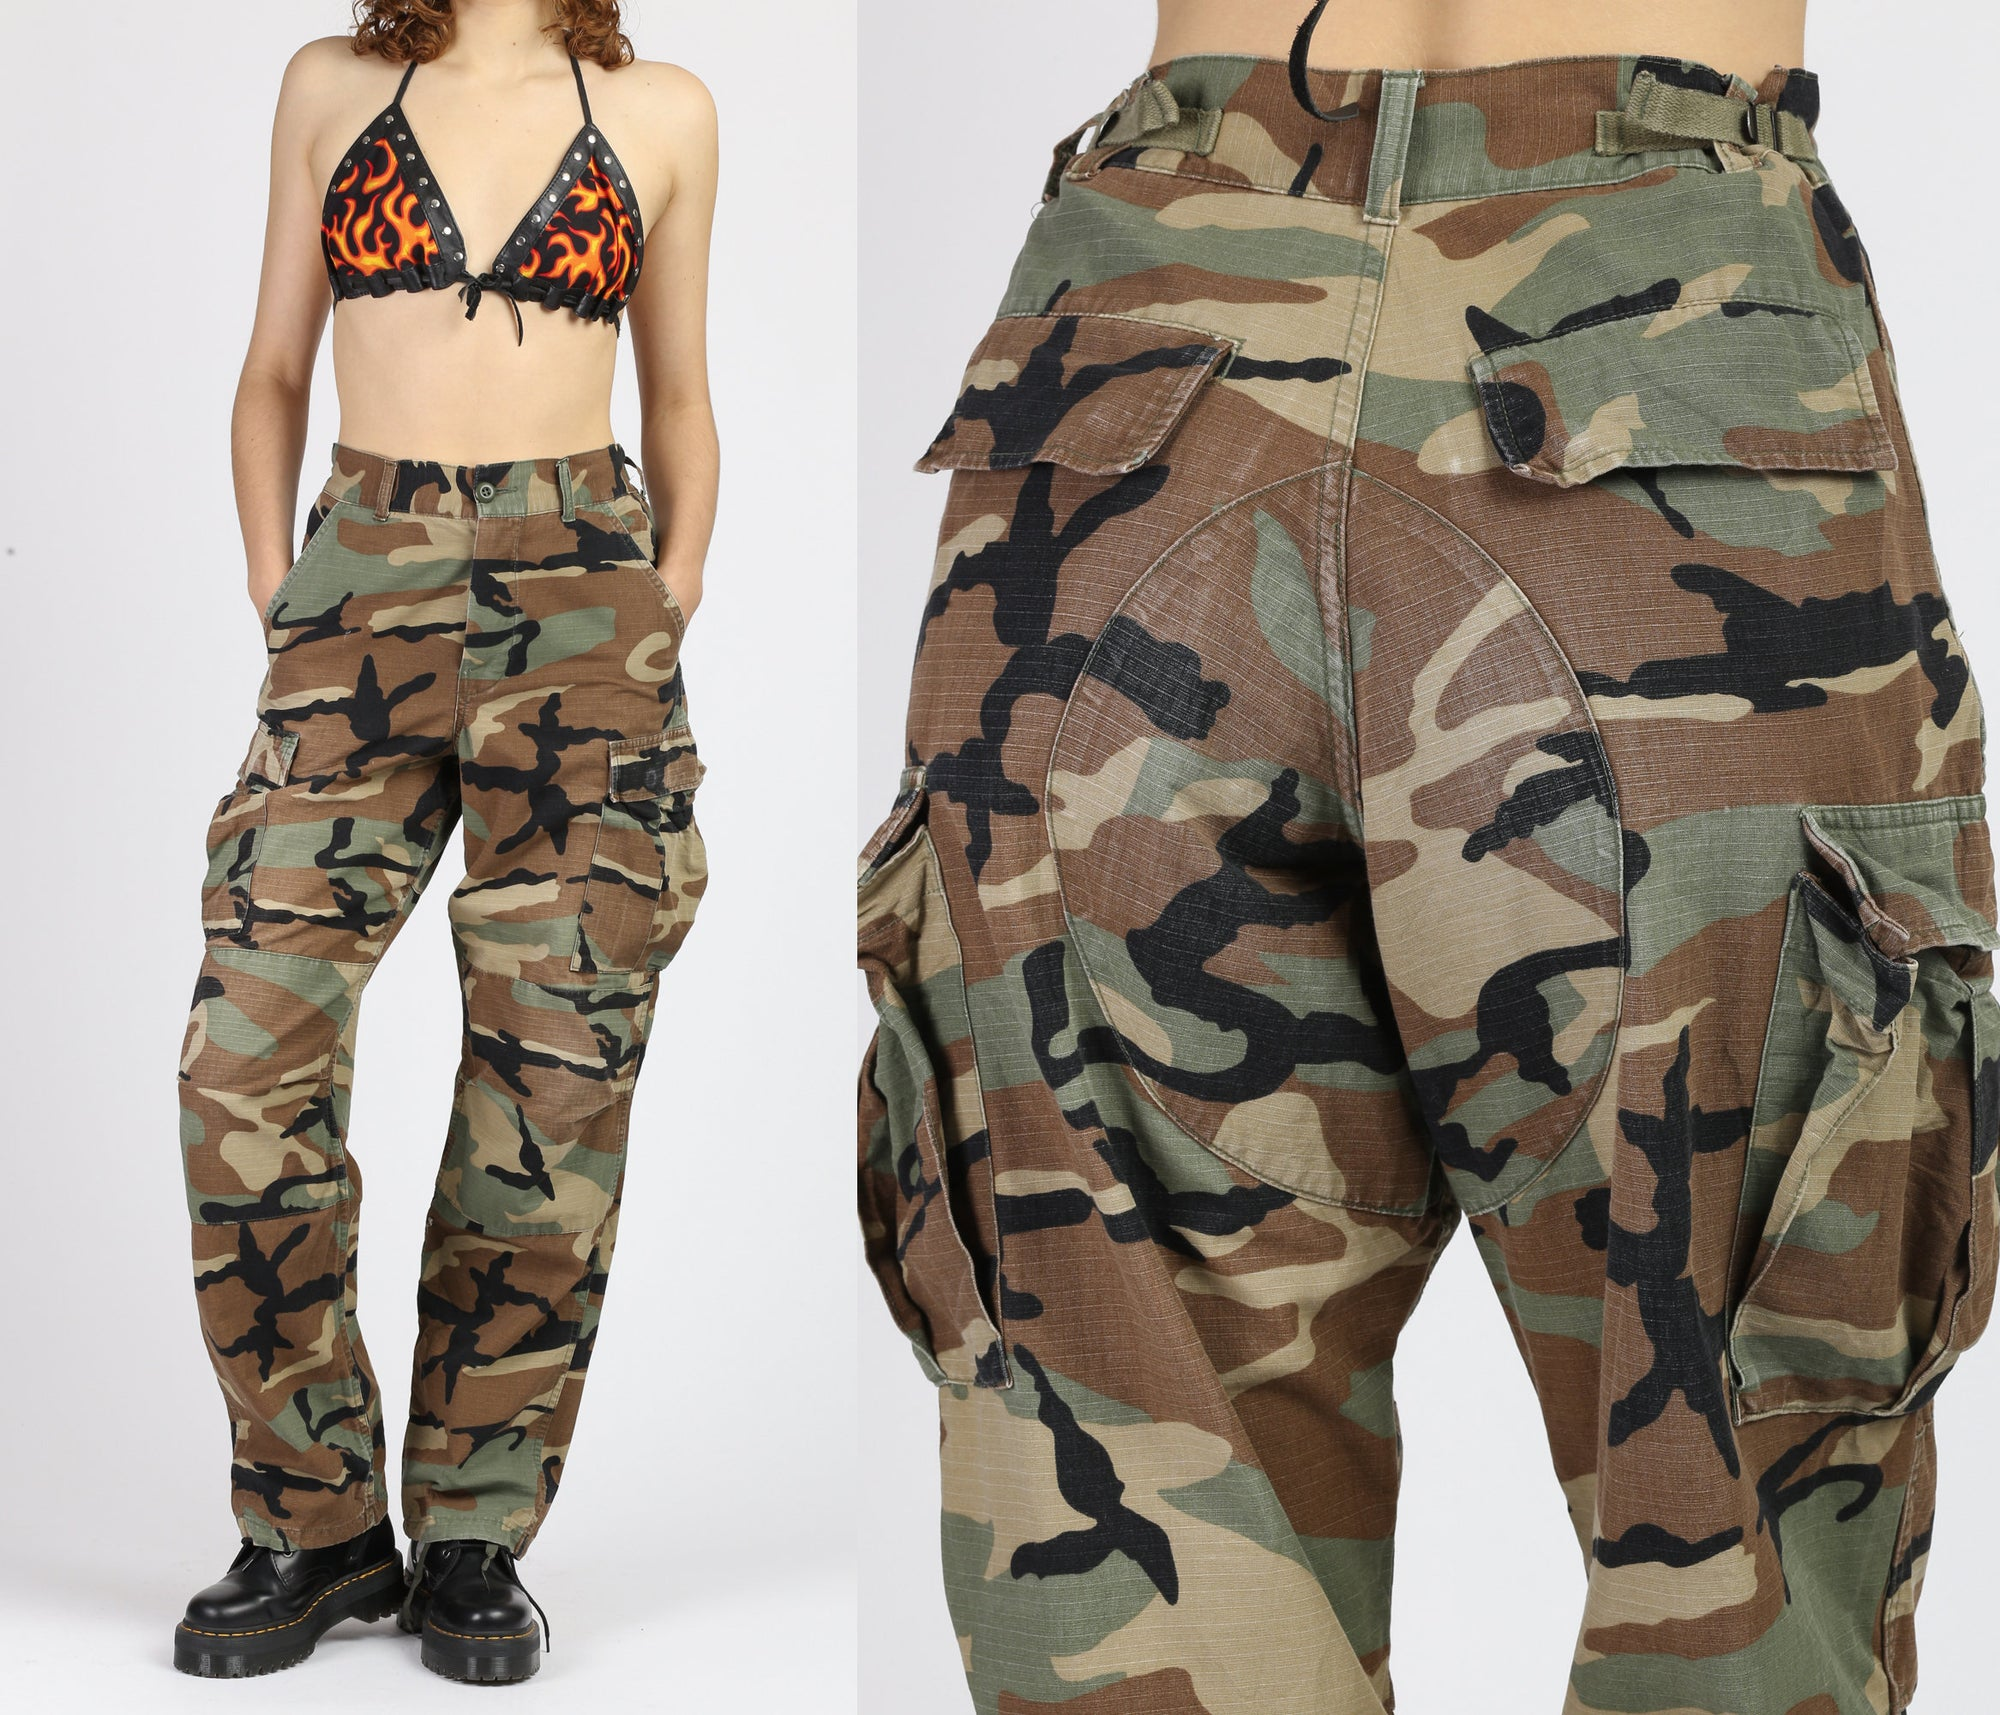 80s High Waisted Unisex Camo Pants - Small to Medium